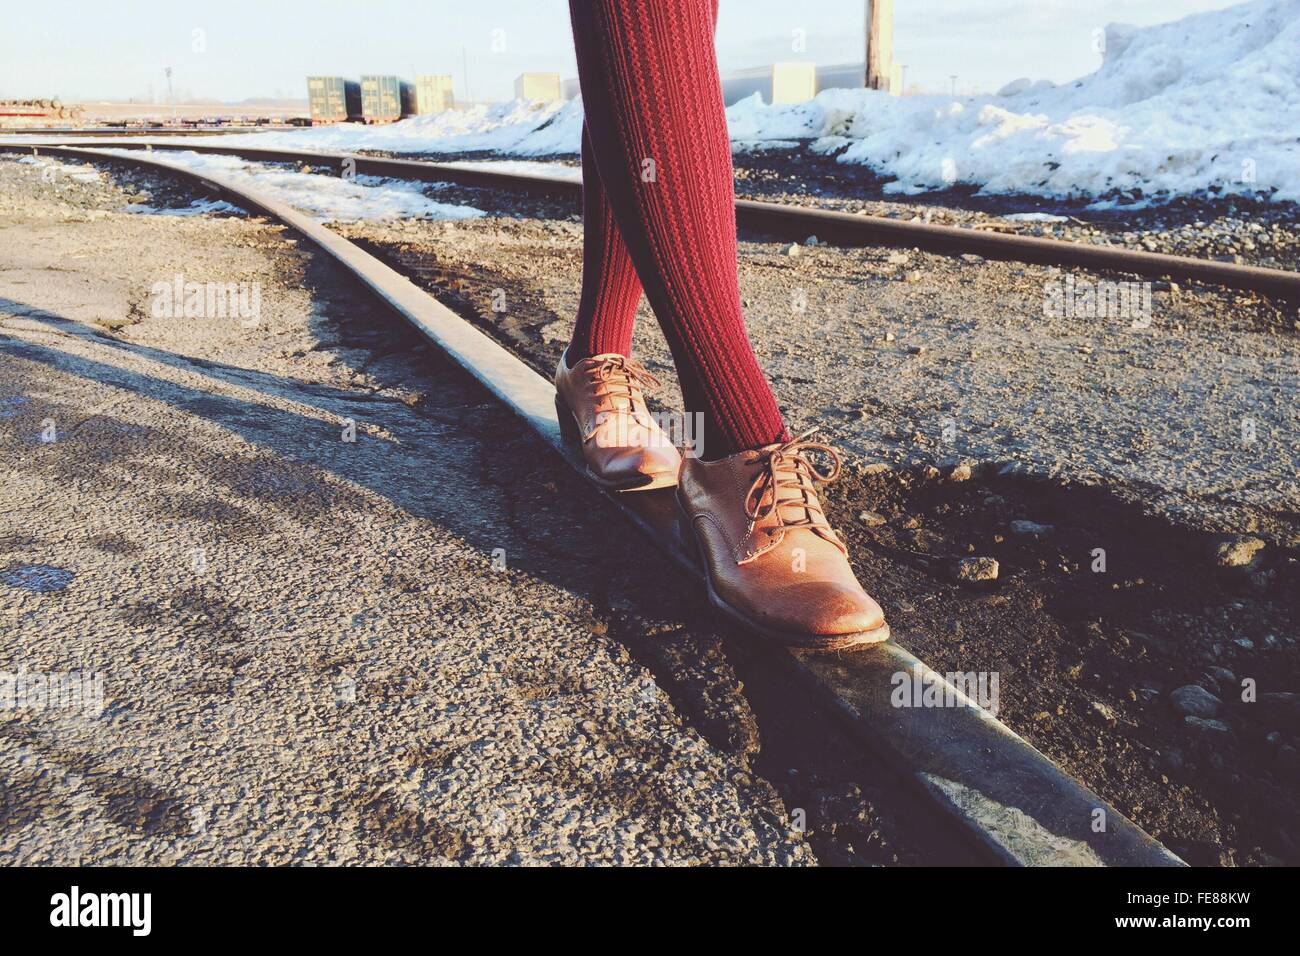 Low Section Of Person Walking On Railroad Track - Stock Image